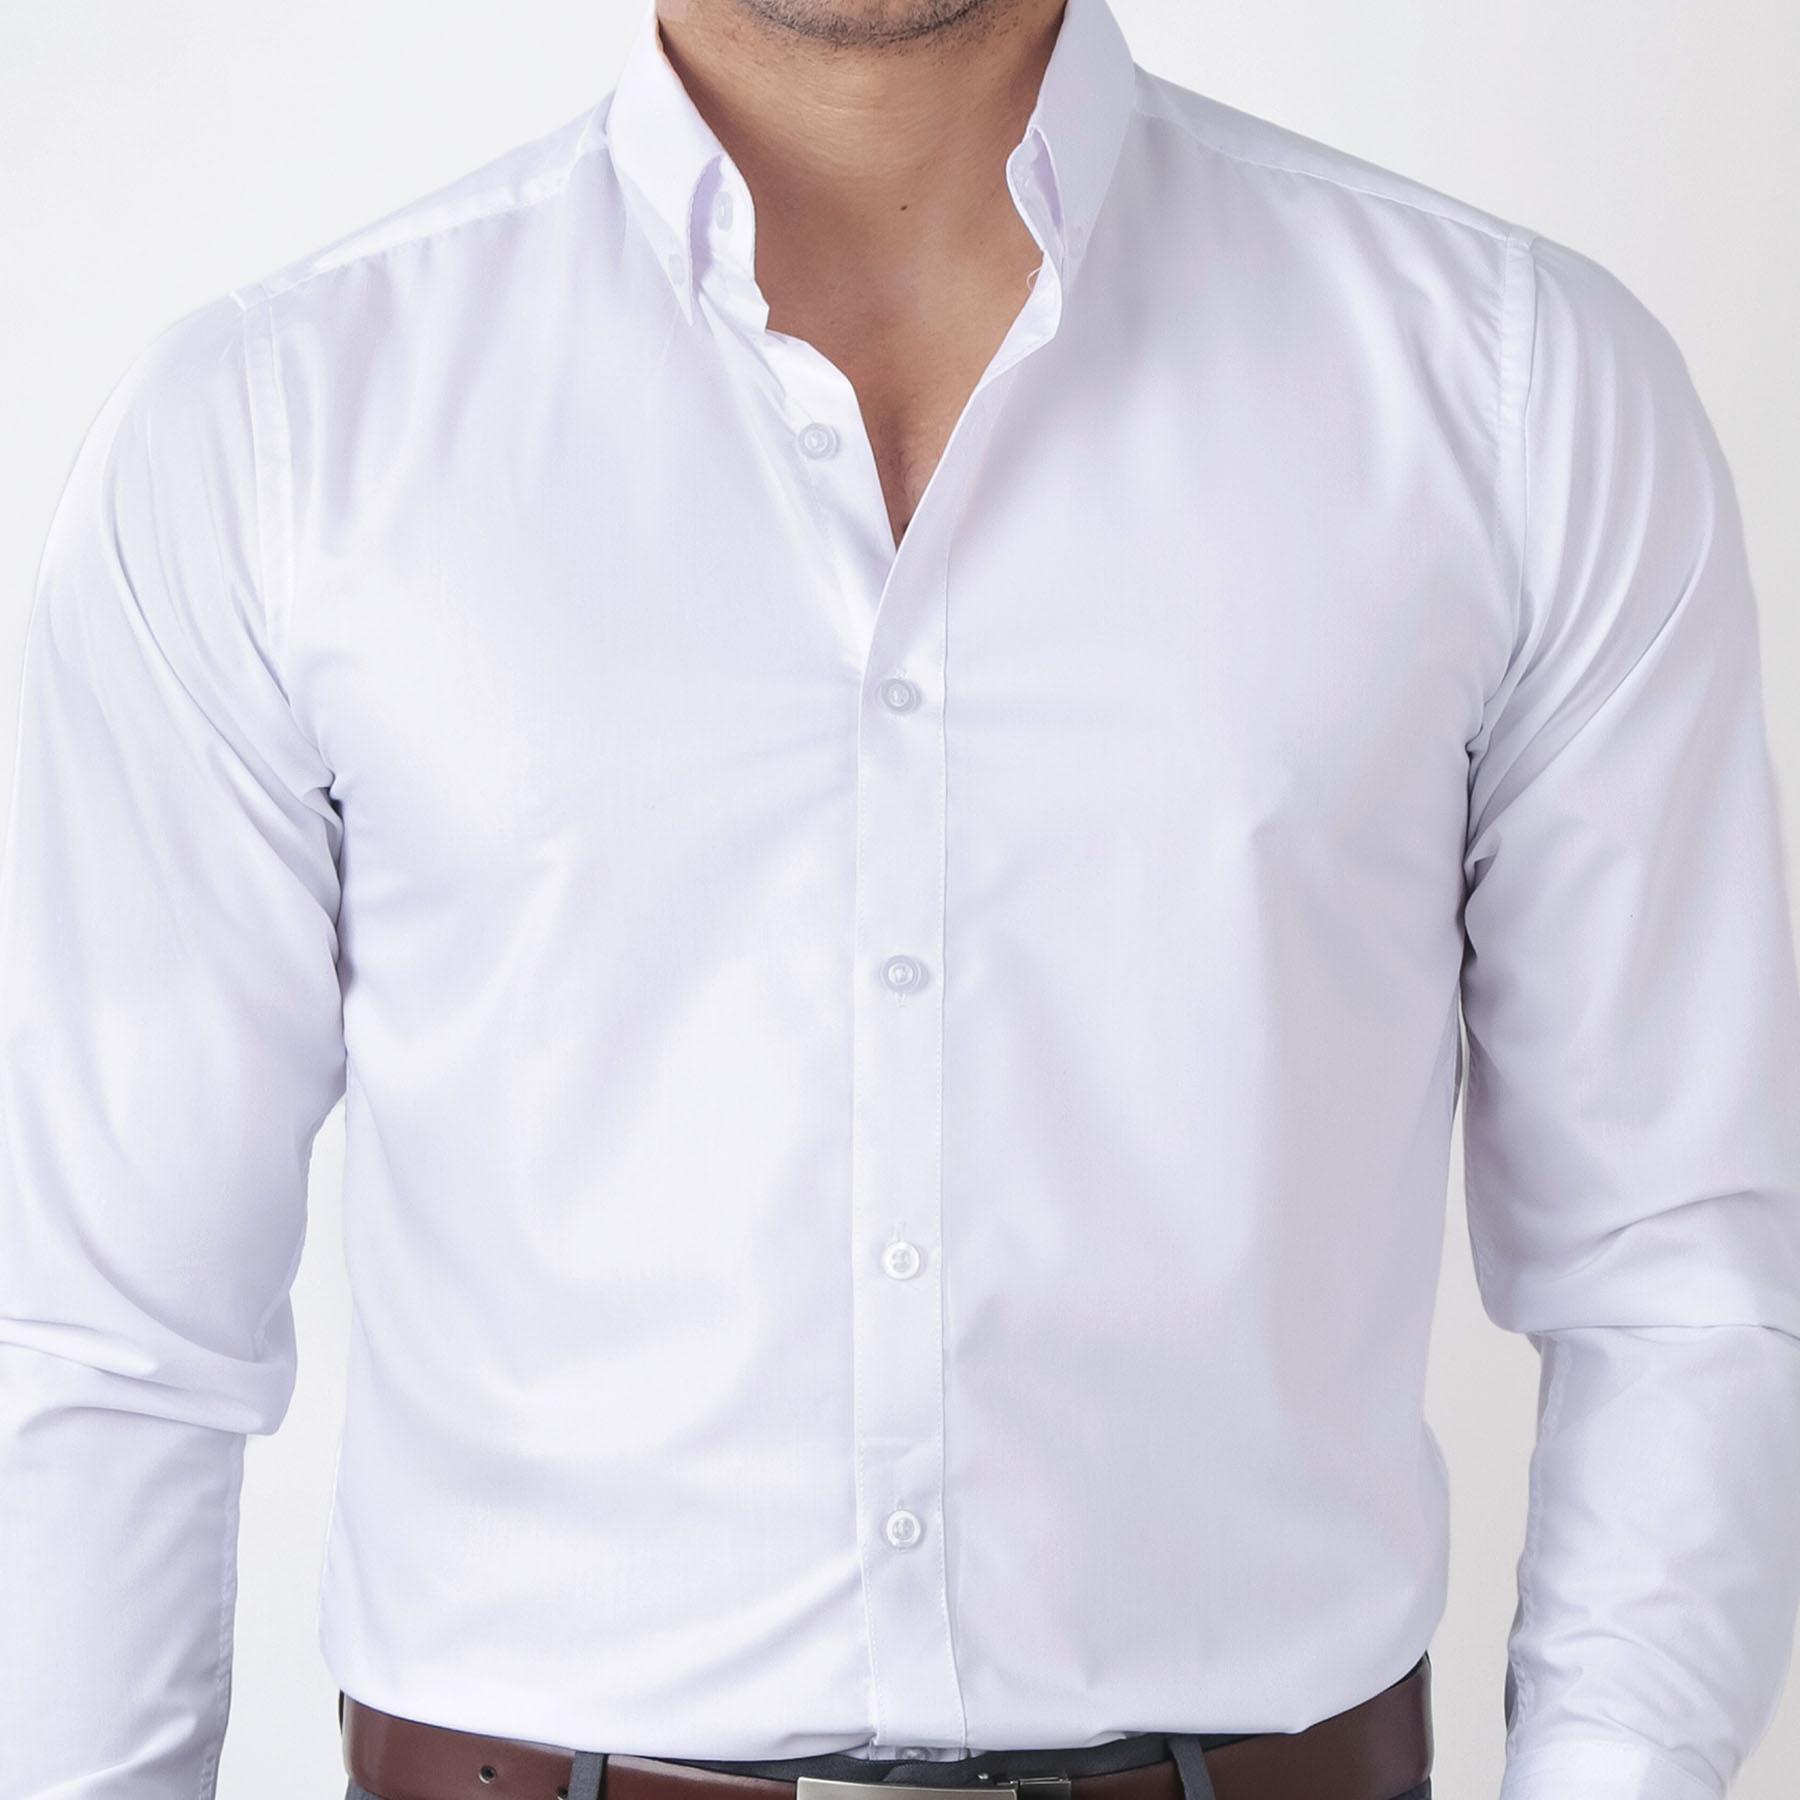 3491c025ea8 IDENTITY Mens Plain White Button Down Woven Smart Casual Formal Corporate  Wear Long Sleeve Shirt